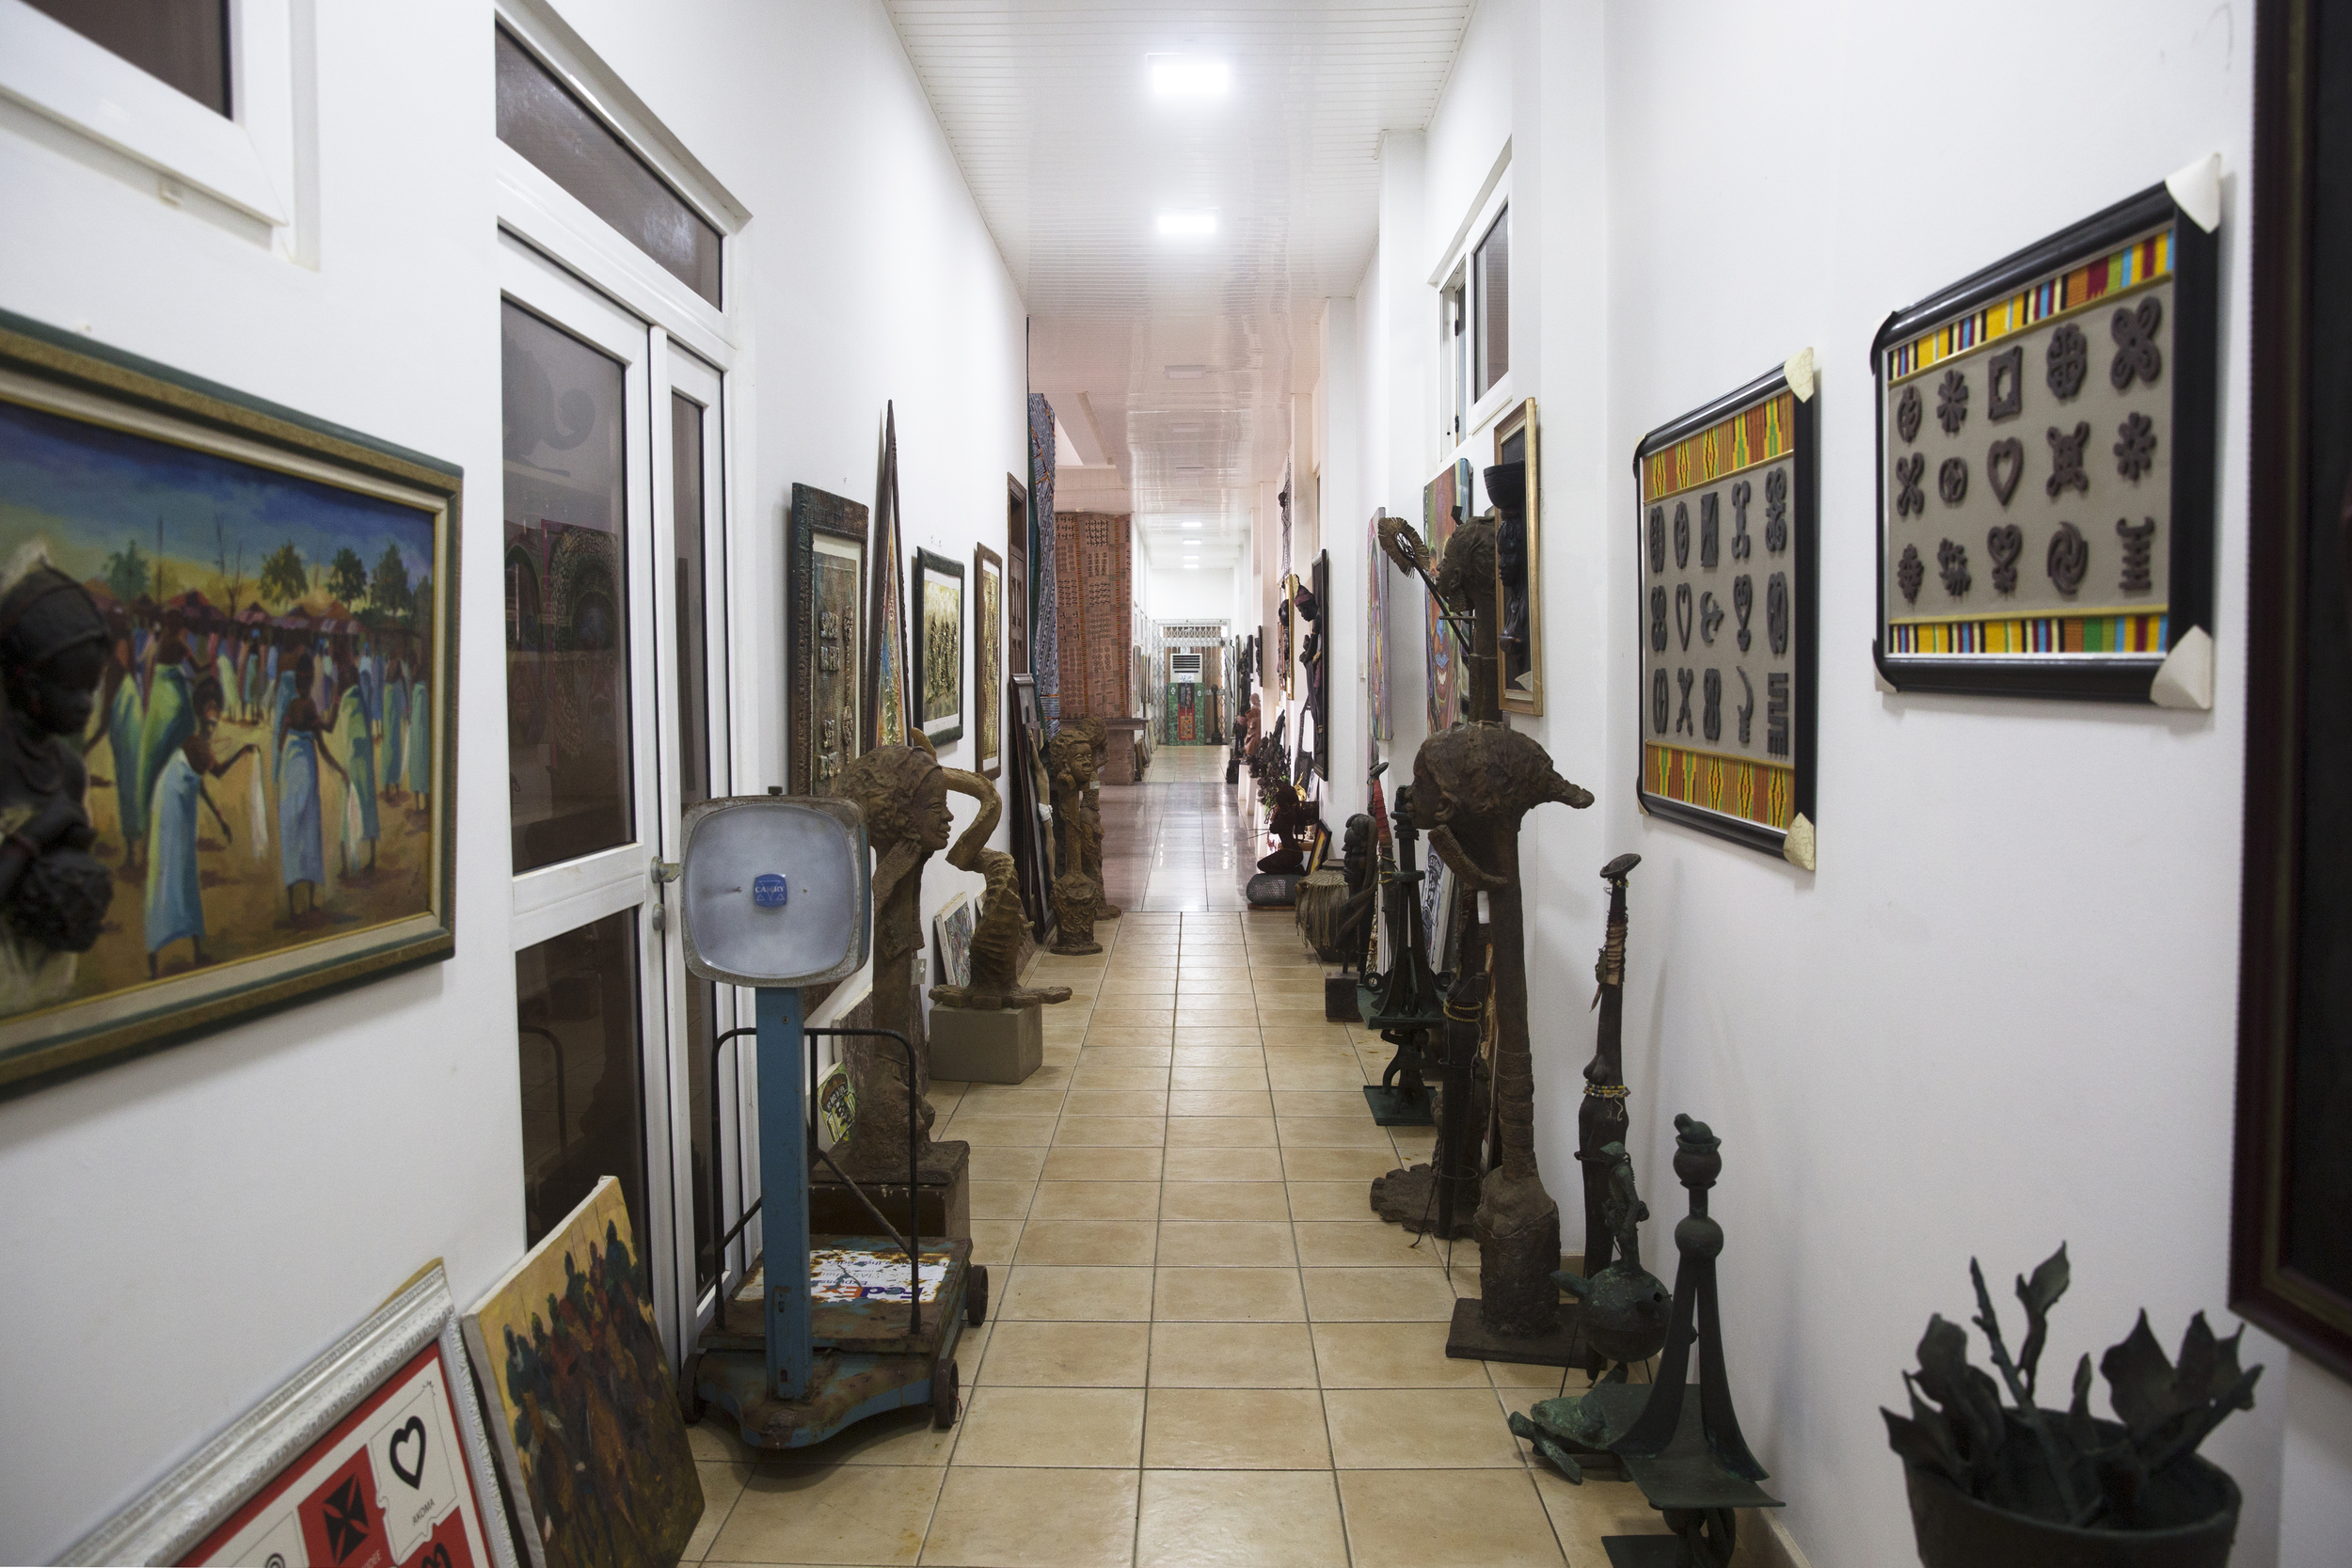 The first floor of the gallery.